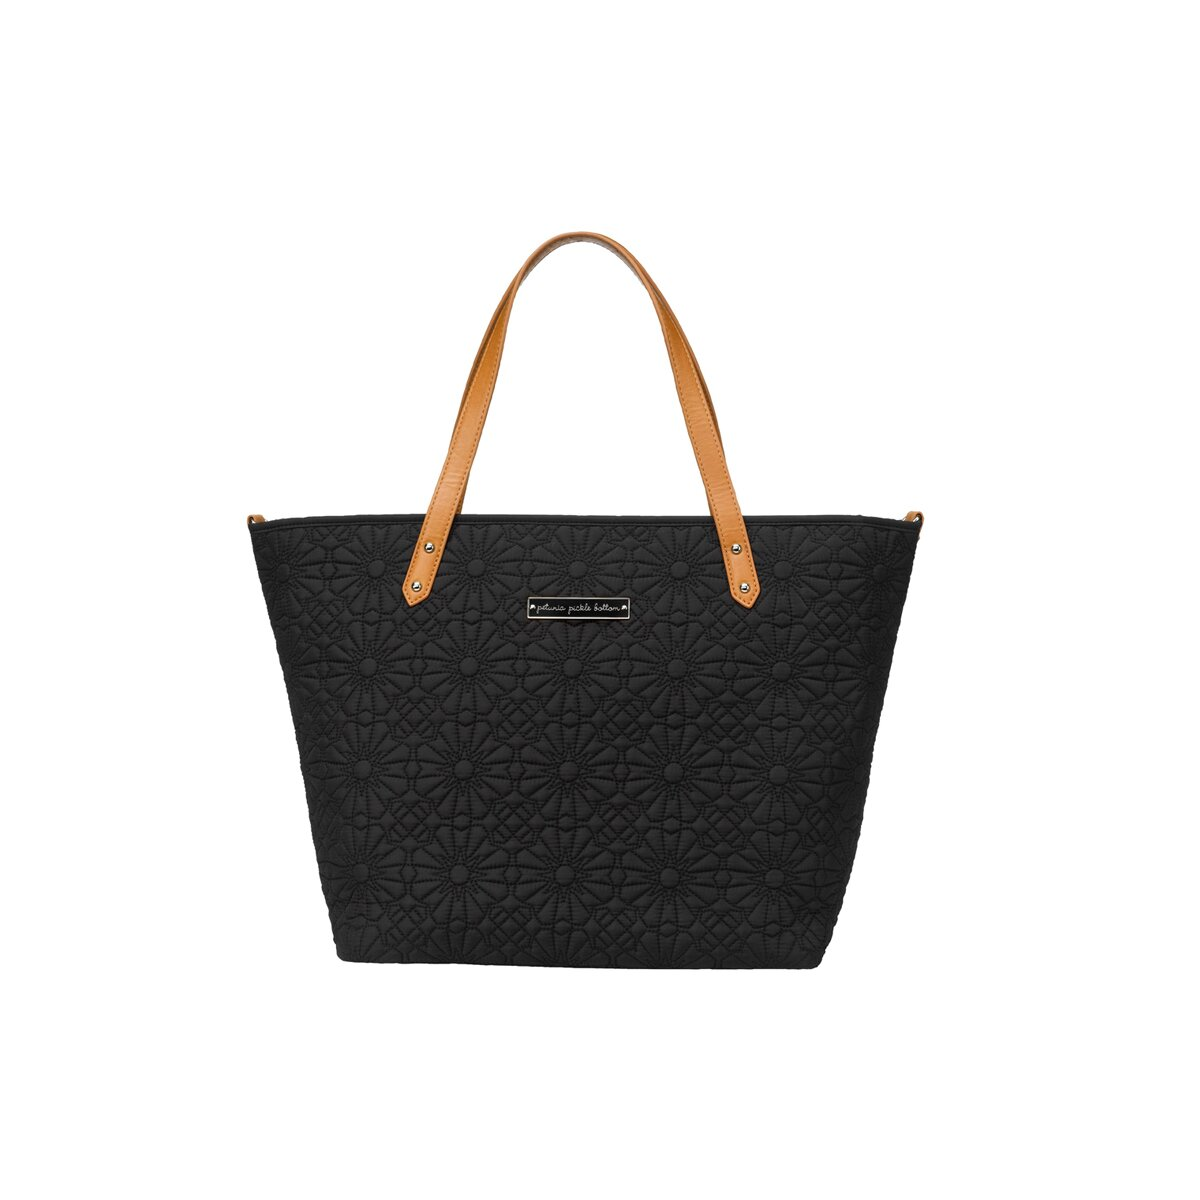 c05a2ee19 10 Bags So Chic You'd Never Guess They're Diaper Bags | Parents